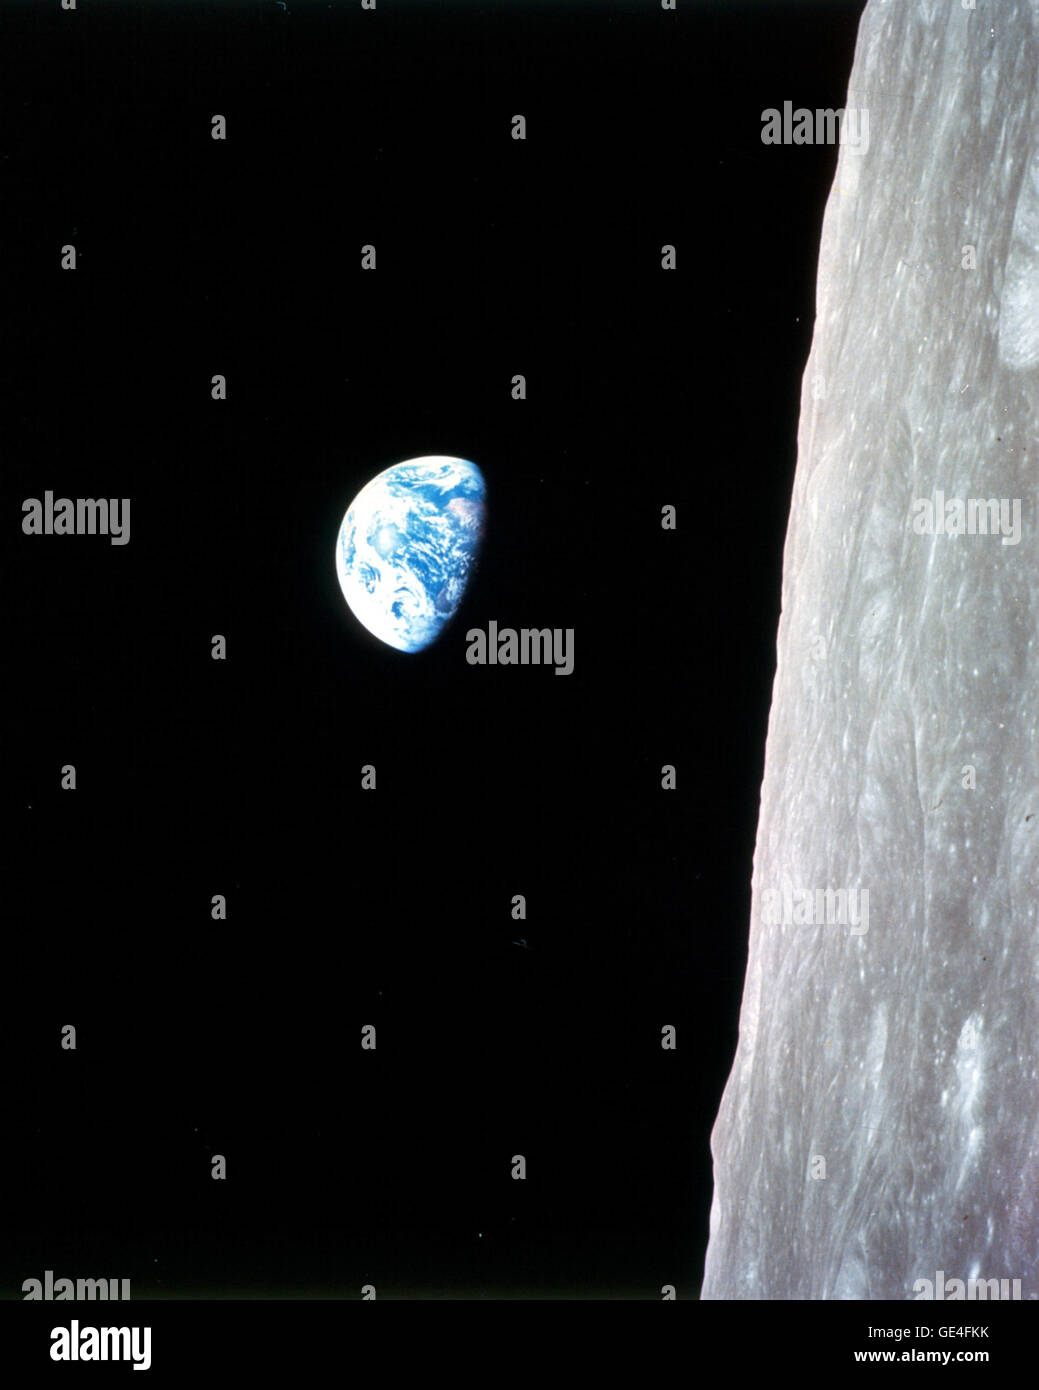 (December 24, 1968) This view of the rising Earth greeted the Apollo 8 astronauts on December 24, 1968 as they came - Stock Image